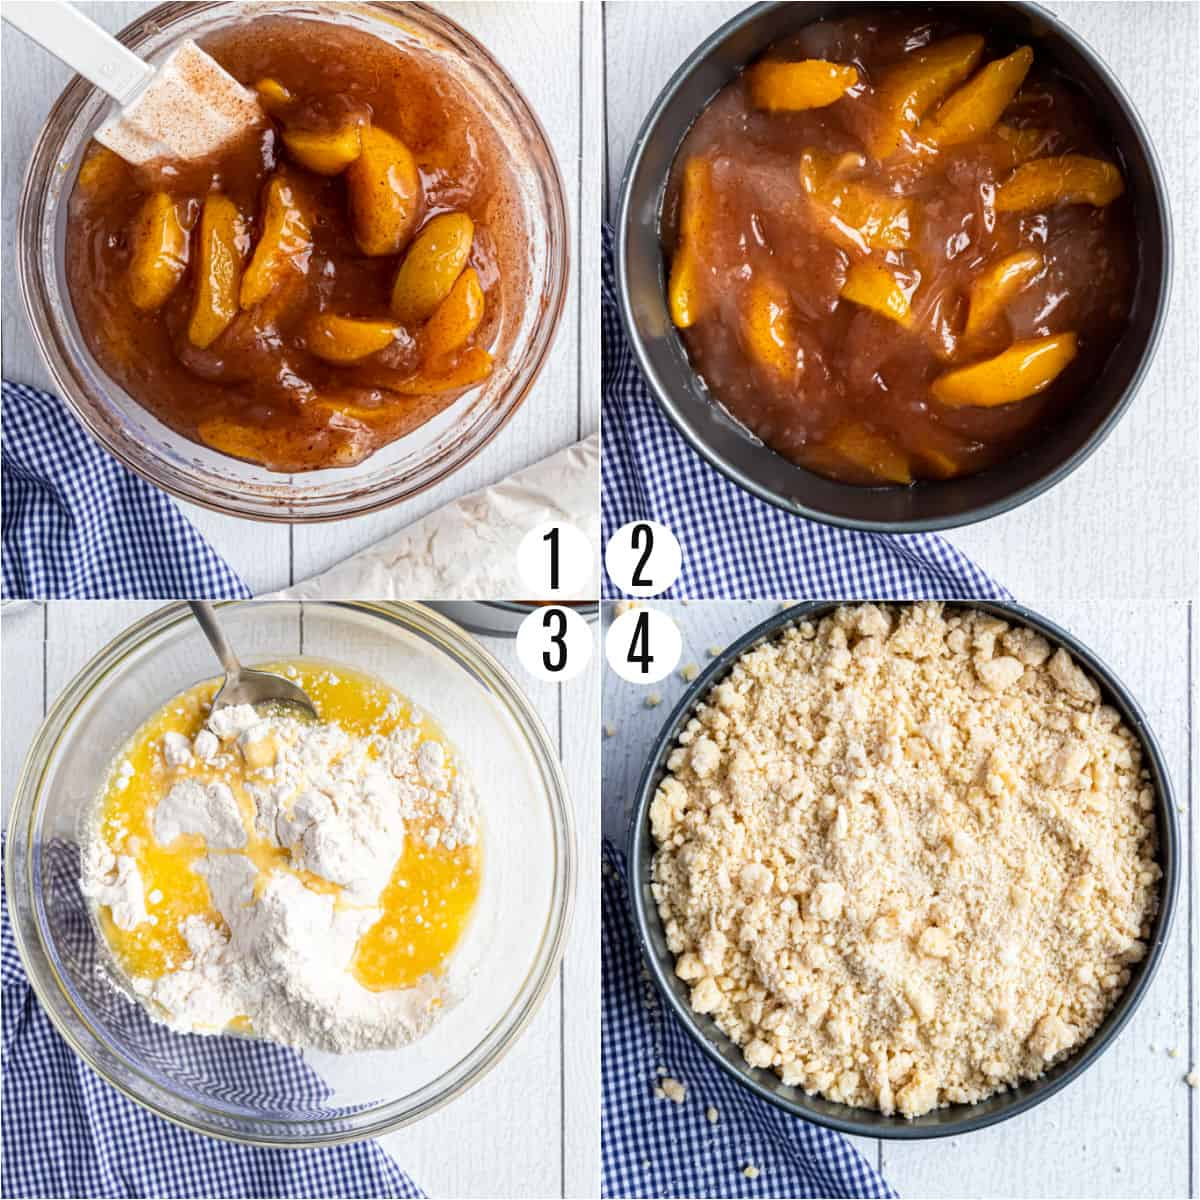 Step by step photos showing how to make peach cobbler in the Instant Pot.